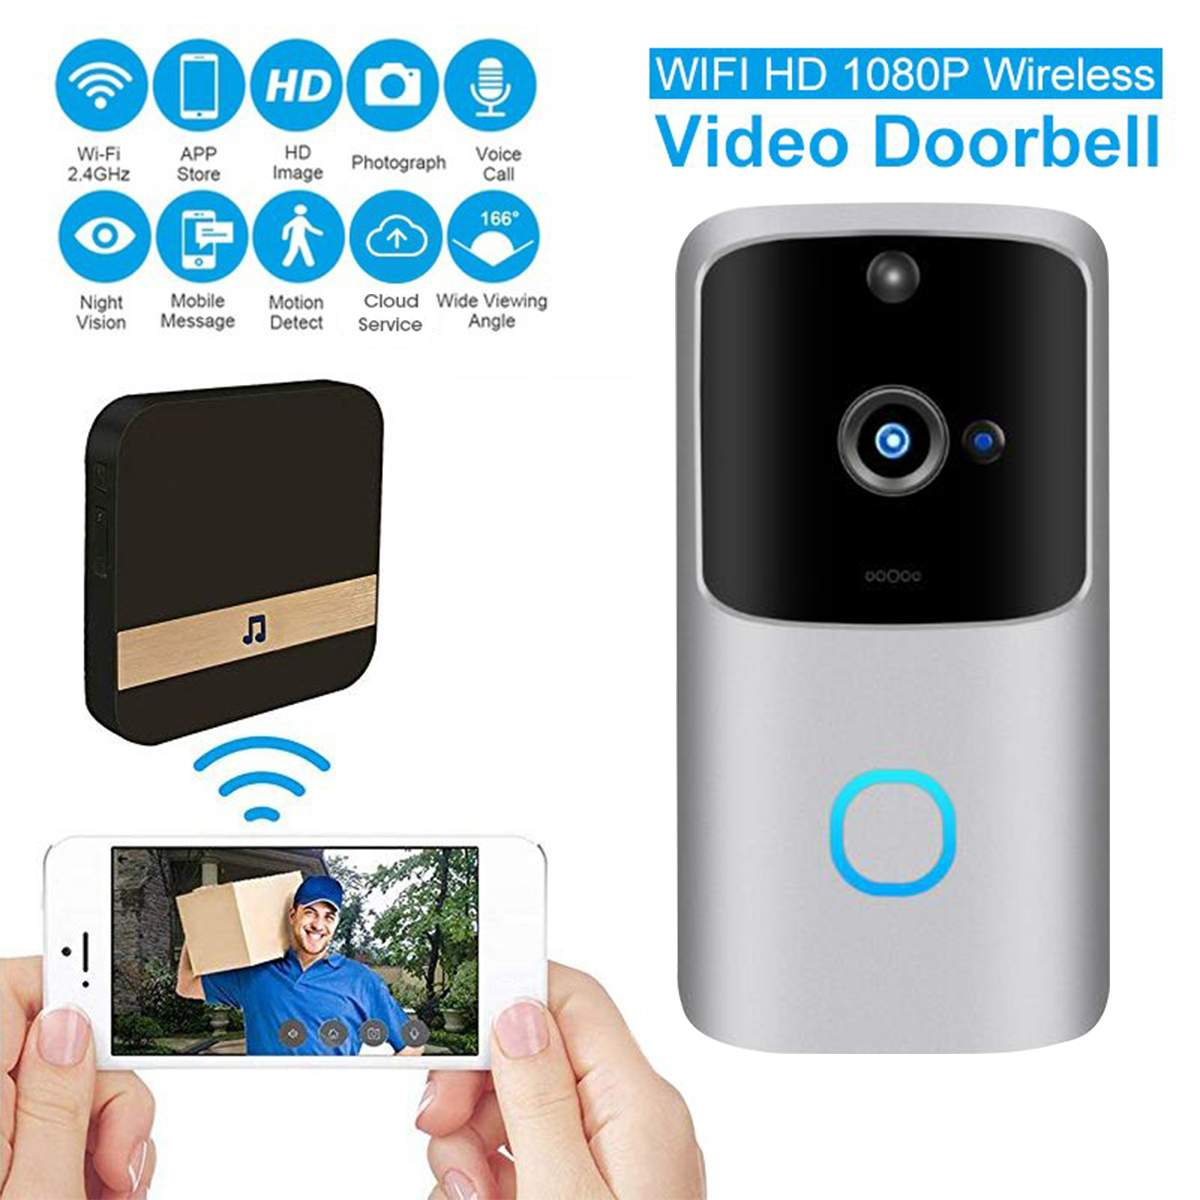 HD 1080P Smart WiFi Video Doorbell Camera Visual Intercom Night Vision IP Door Bell Wireless Security Camera Smart Doorbell